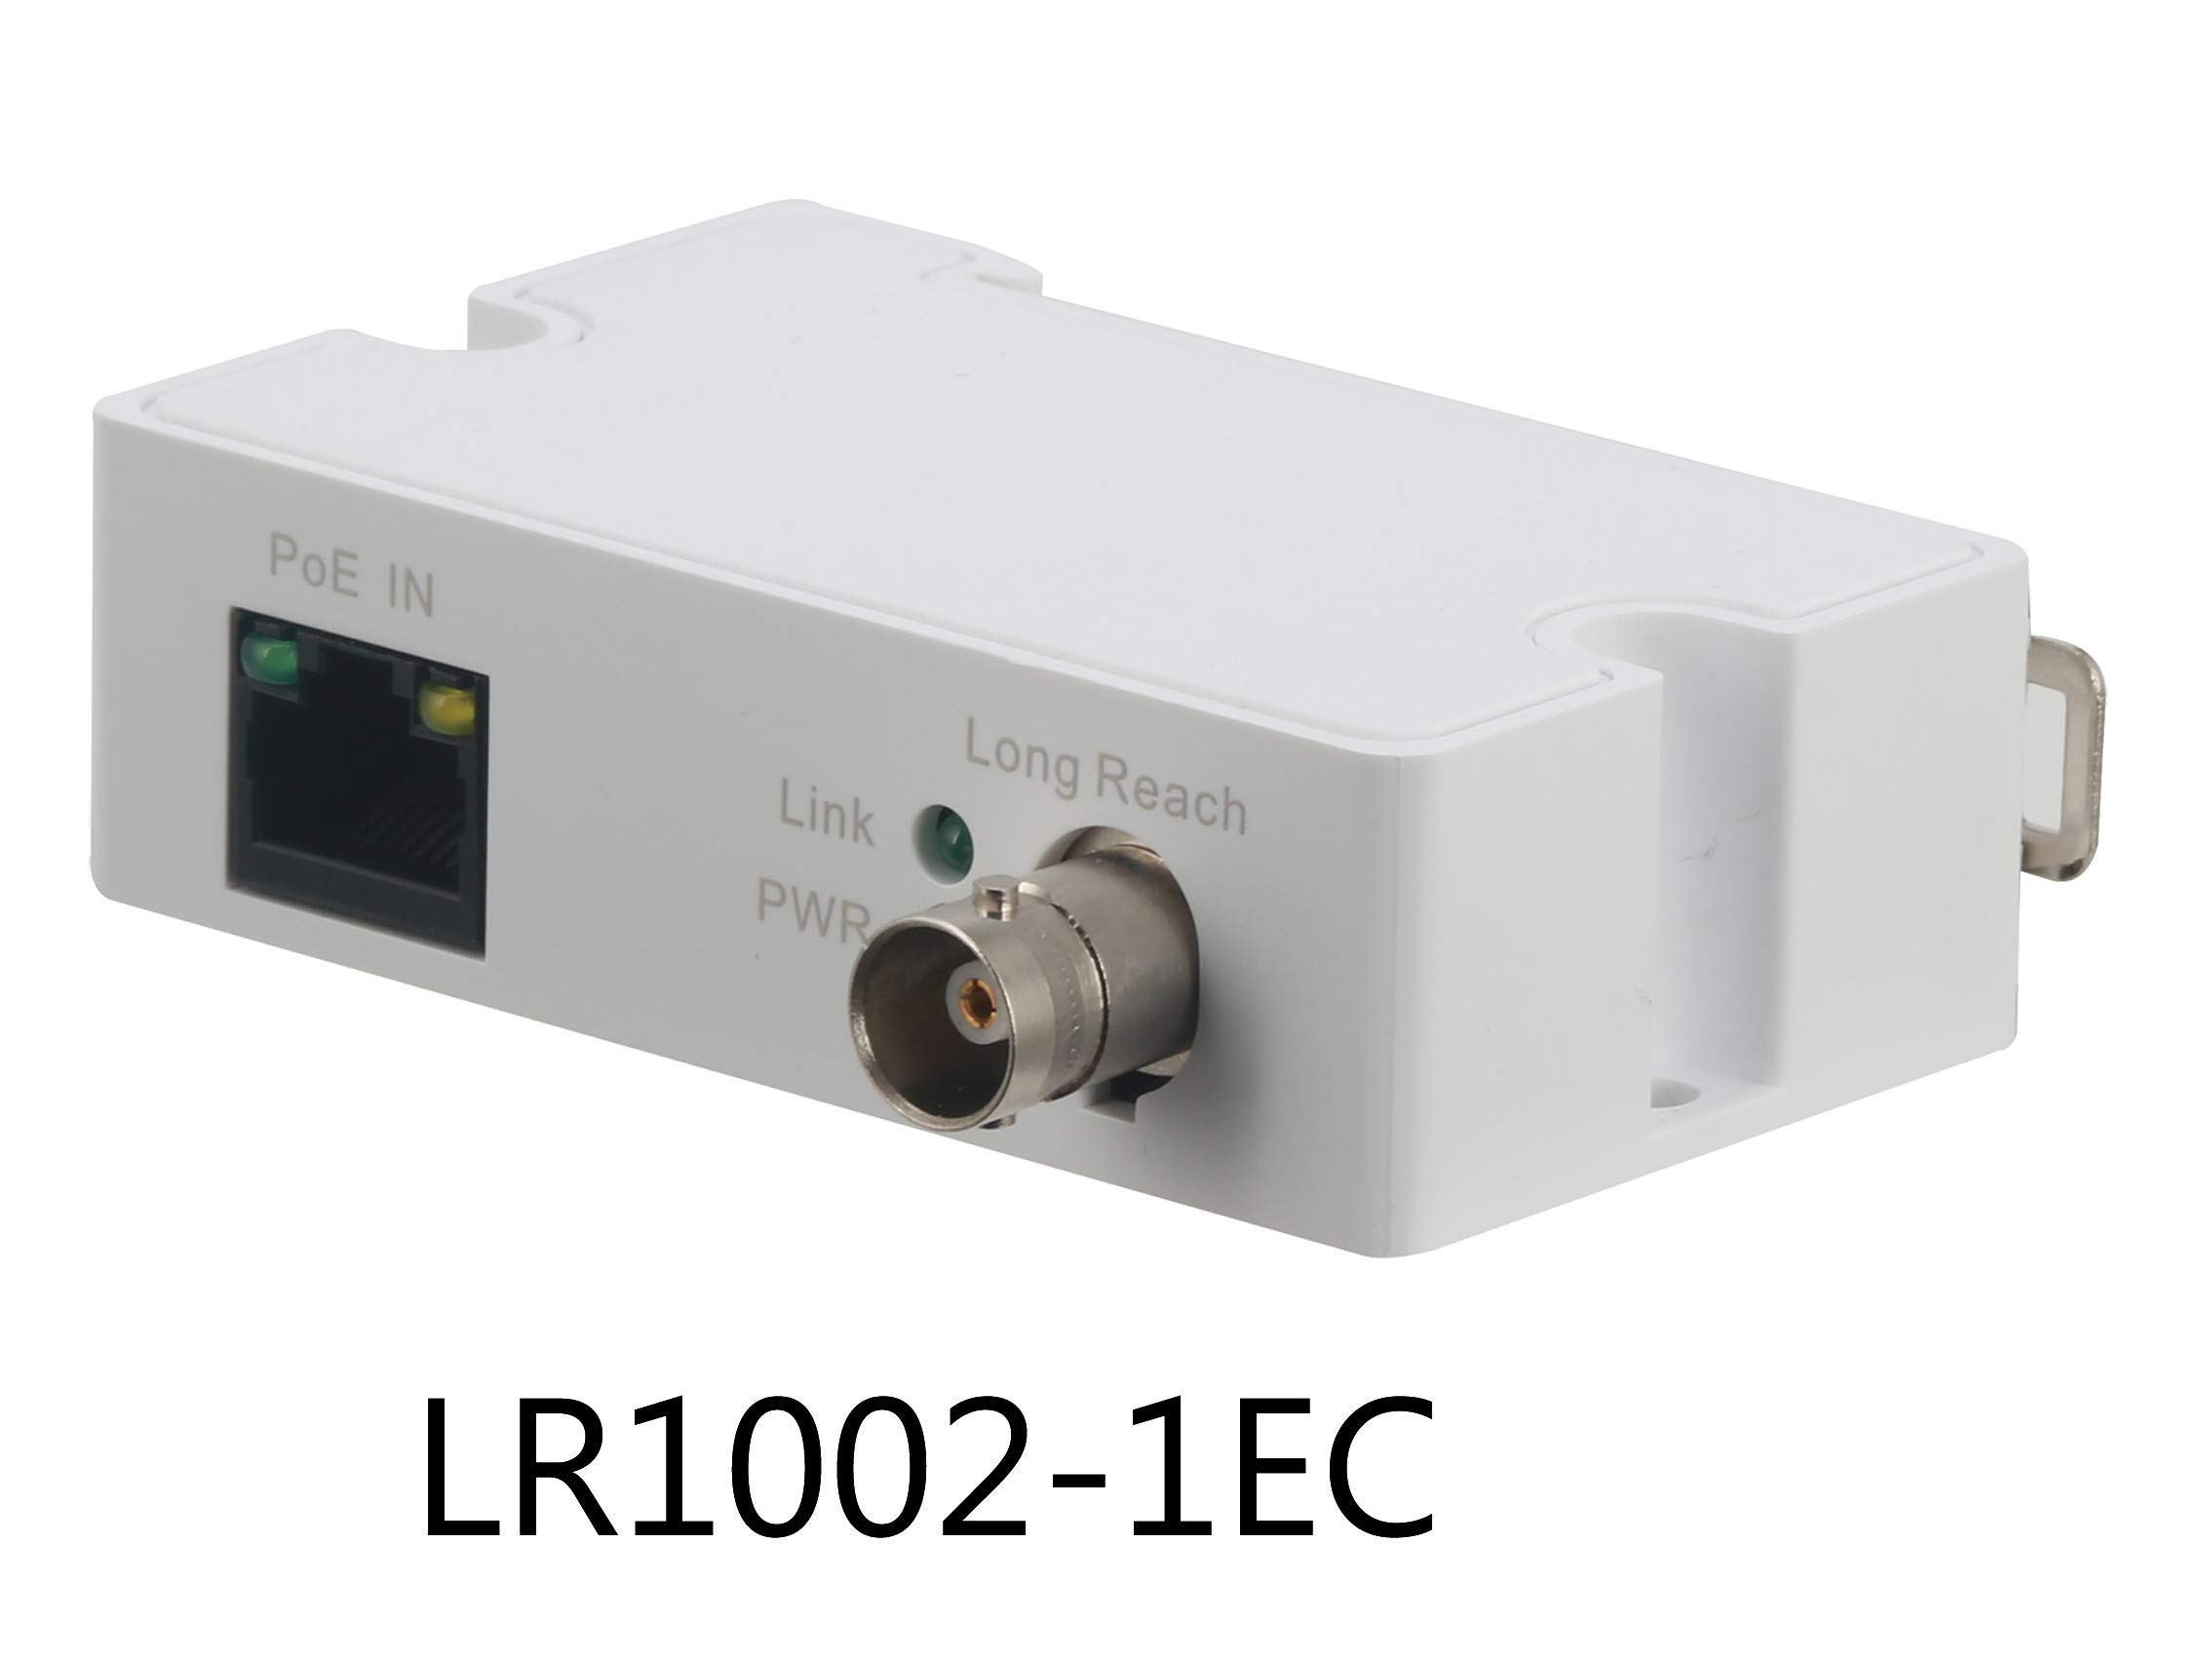 Dahua LR1002-1EC PoE IP Over Coax EoC Converter Single Port Long Reach Ethernet Over Coax Extender for CCTV IP Camera(Receiver Only) by LINOVISION